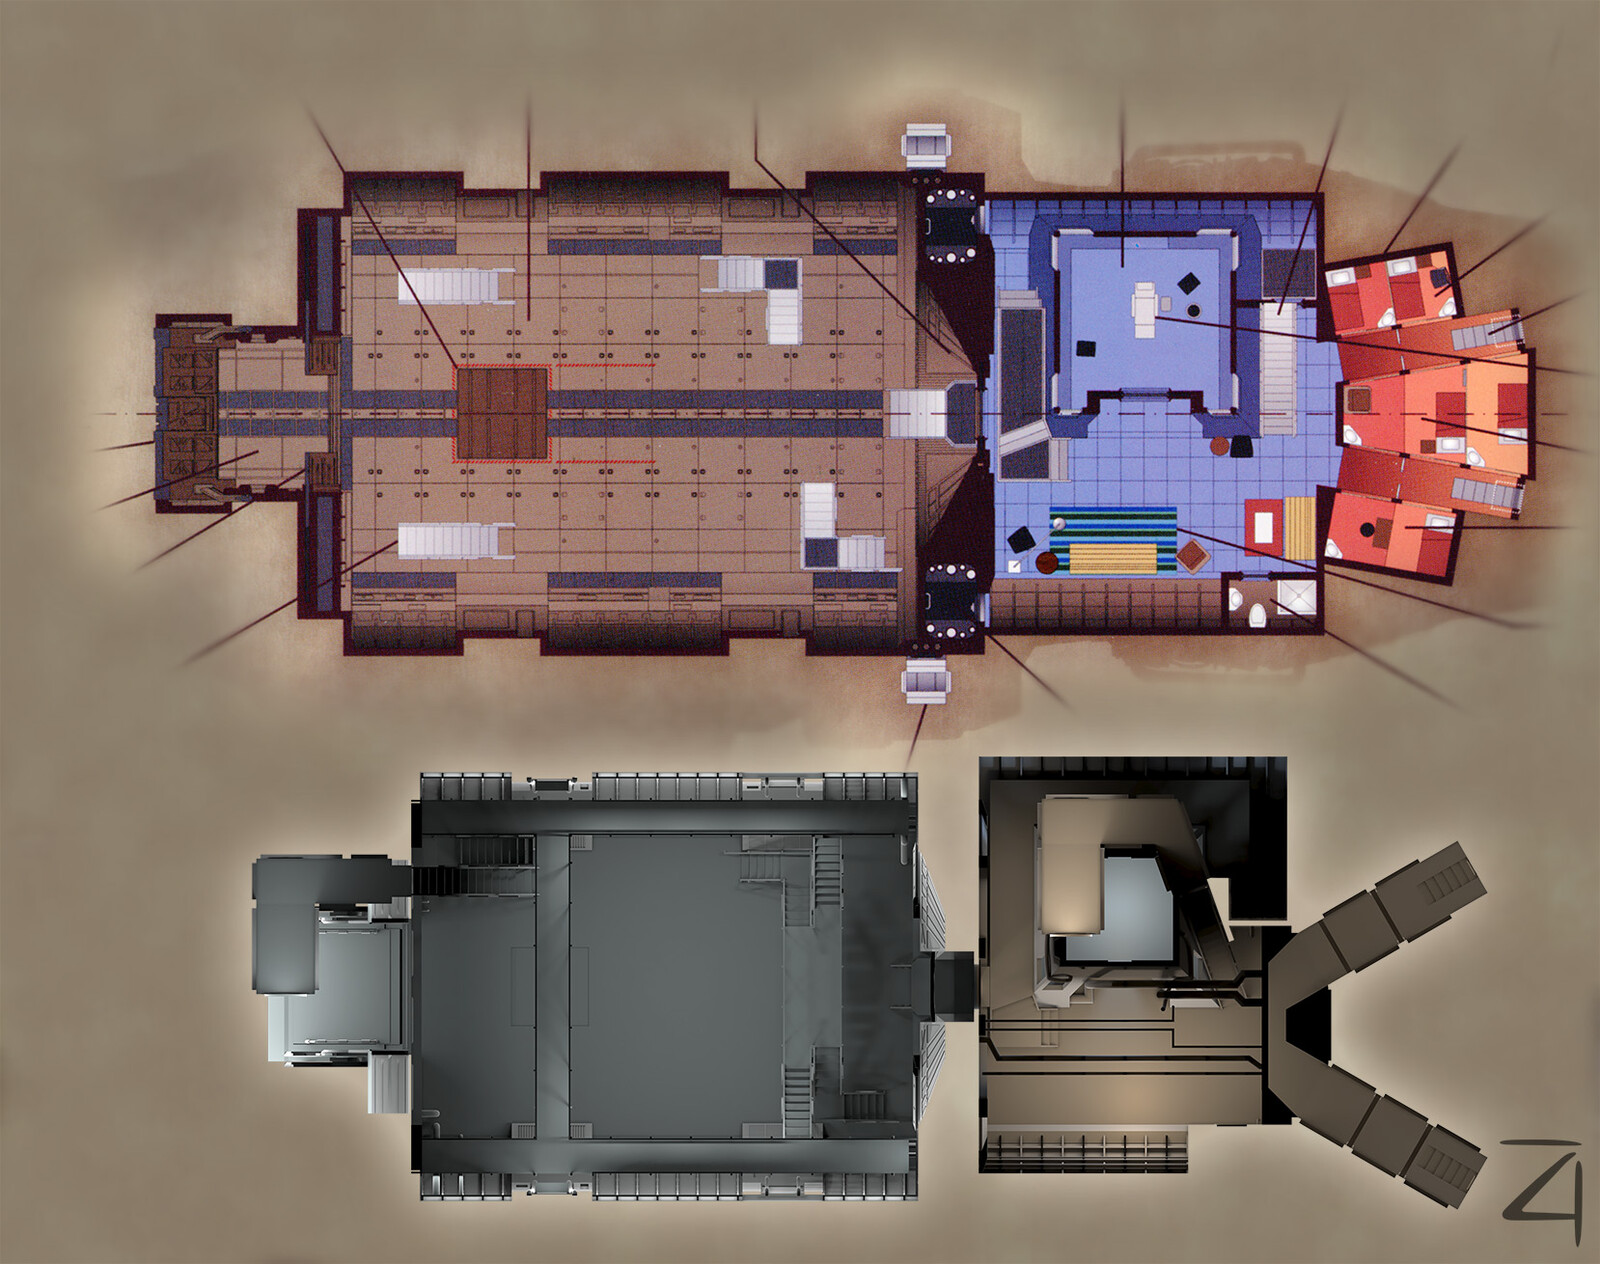 From what I could tell, the Quantum Mechanix blueprints I'm comparing to here used the cargo hold pretty much as-is, except they scaled it up, so the real one is a bit smaller. The lounge is much different and is a weird design.